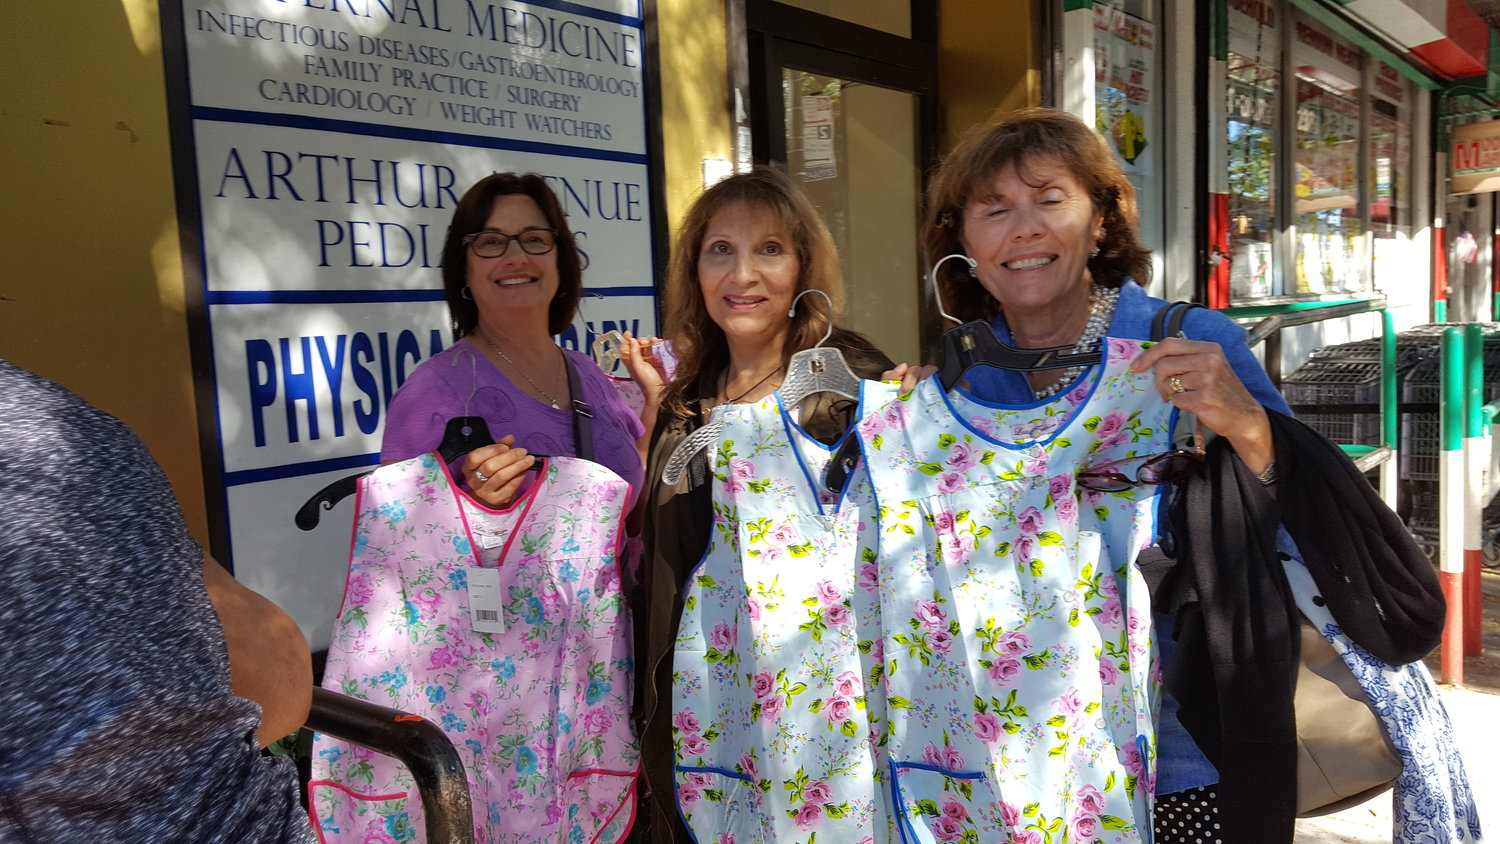 On Arthur Avenue in the Bronx, Grace Toppi, Torie Zaninni and Carol Bissanti purchase aprons reminiscent of those worn by Italian American women